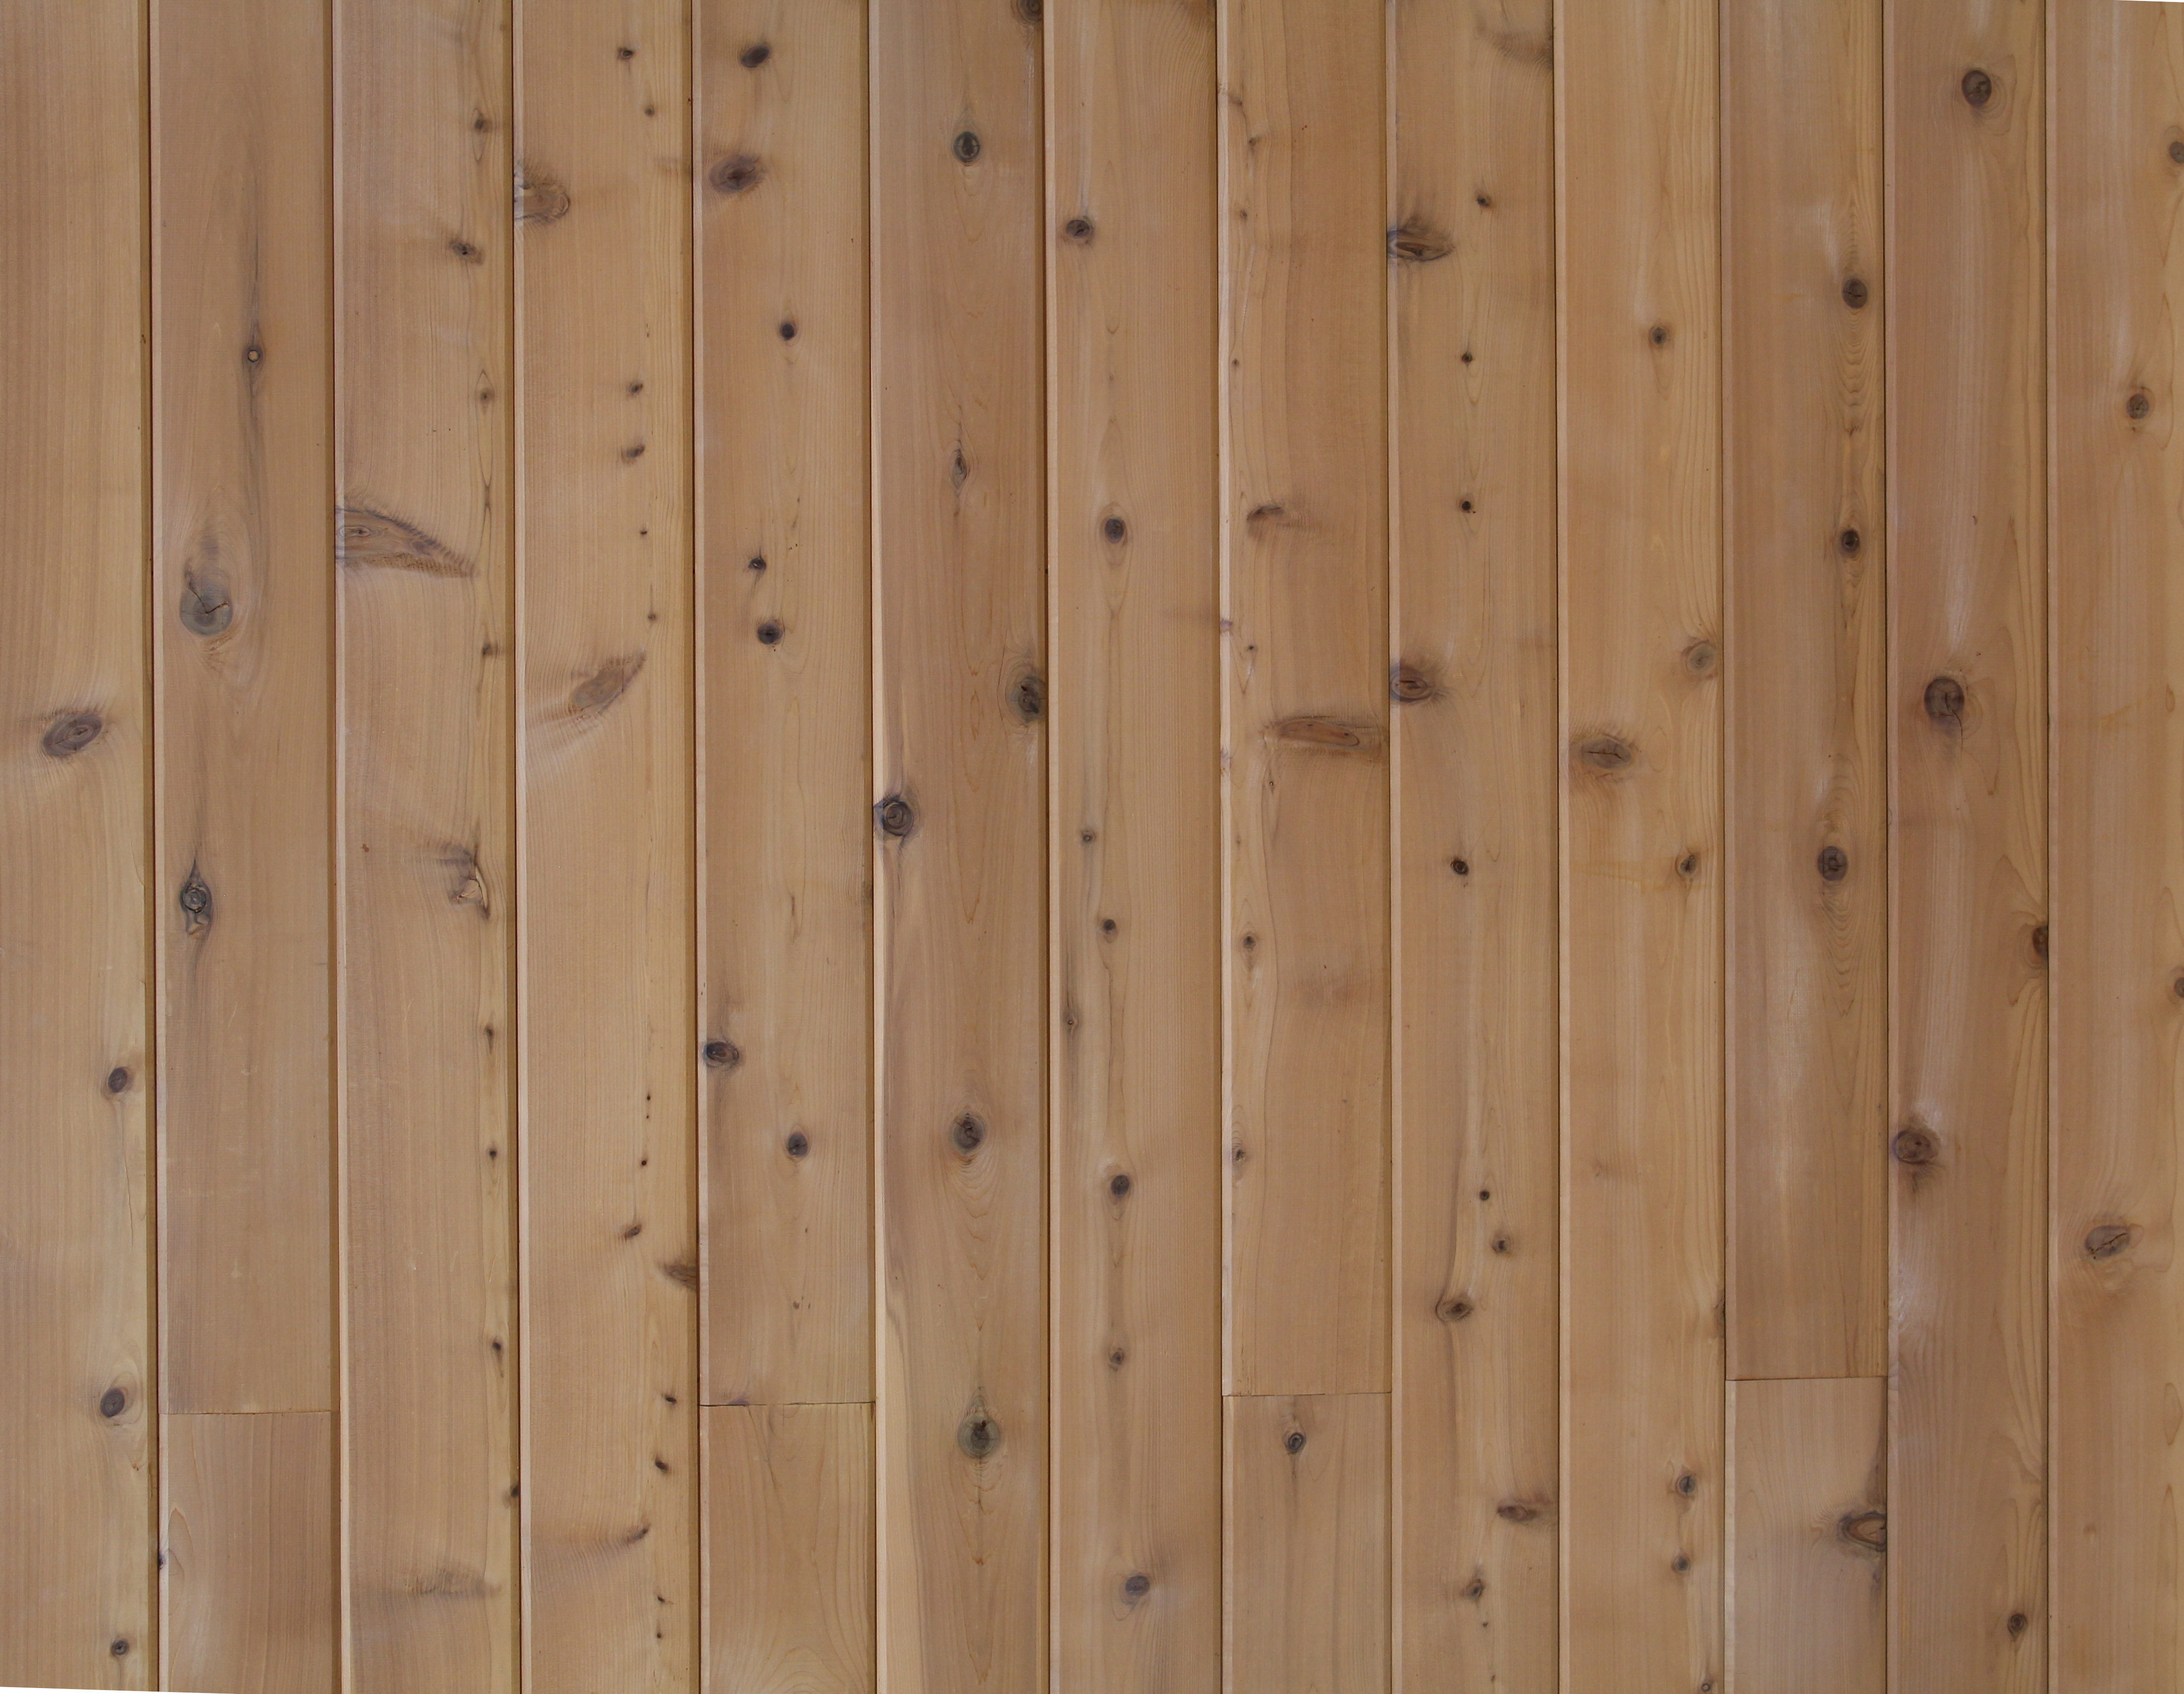 Light Wood Panel Texture Home Decorating Ideas - Homes Alternative ...